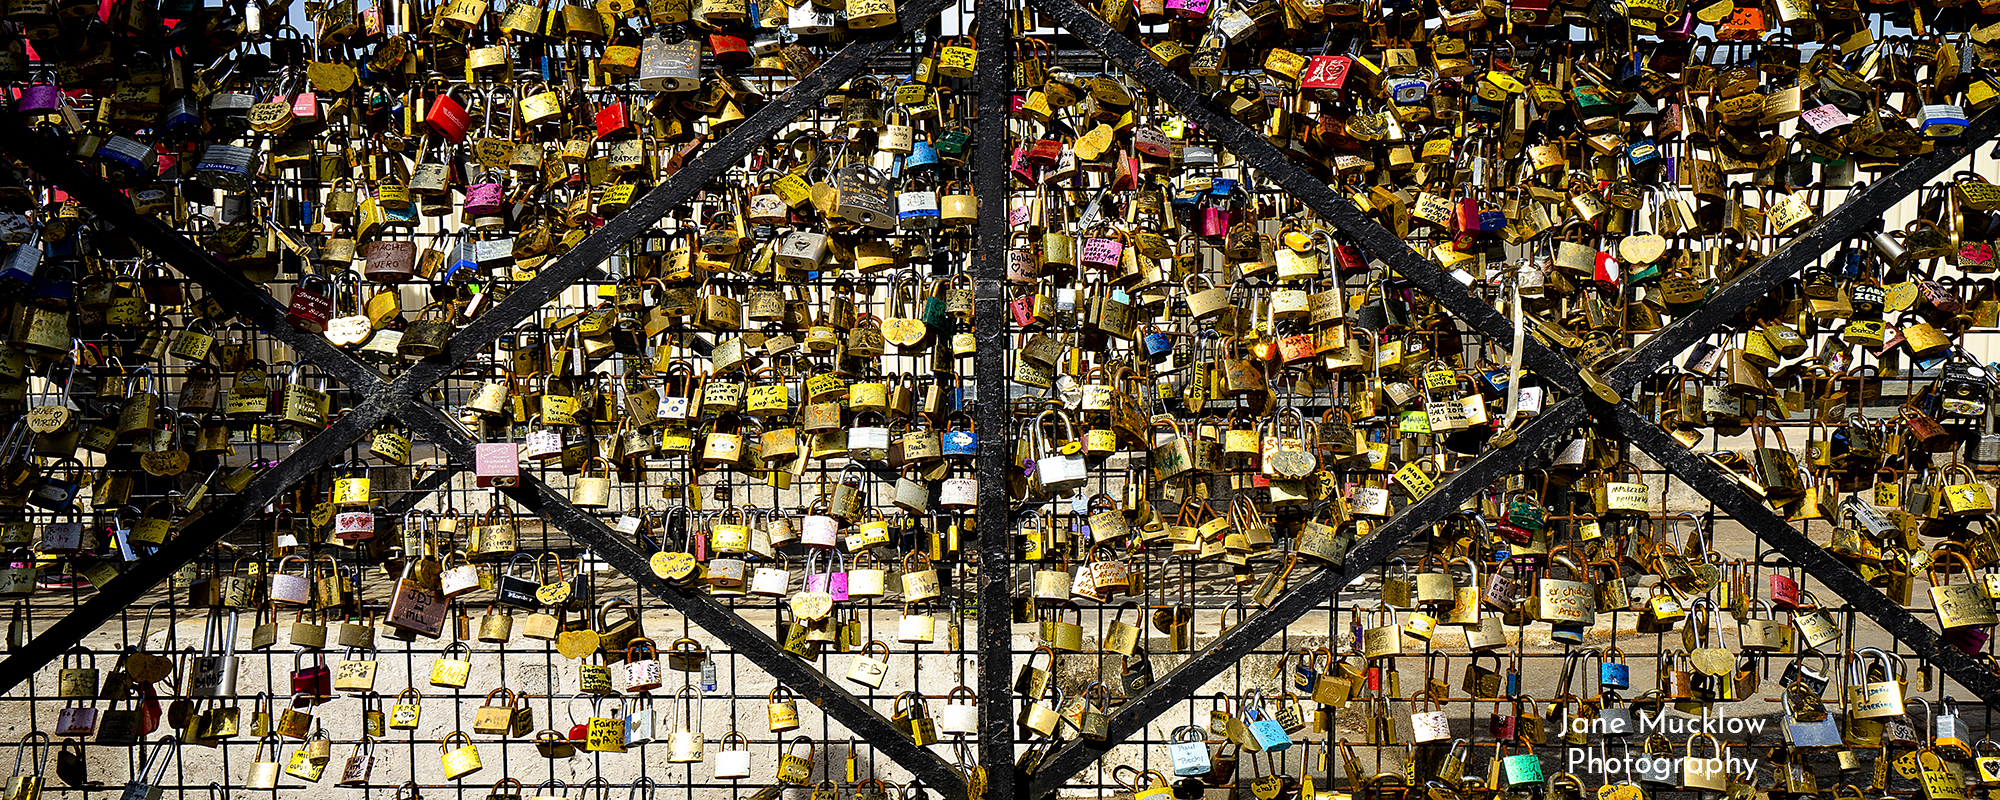 Photo by Jane Mucklow of lovelocks on a bridge in Paris, available as a canvas for your wall.